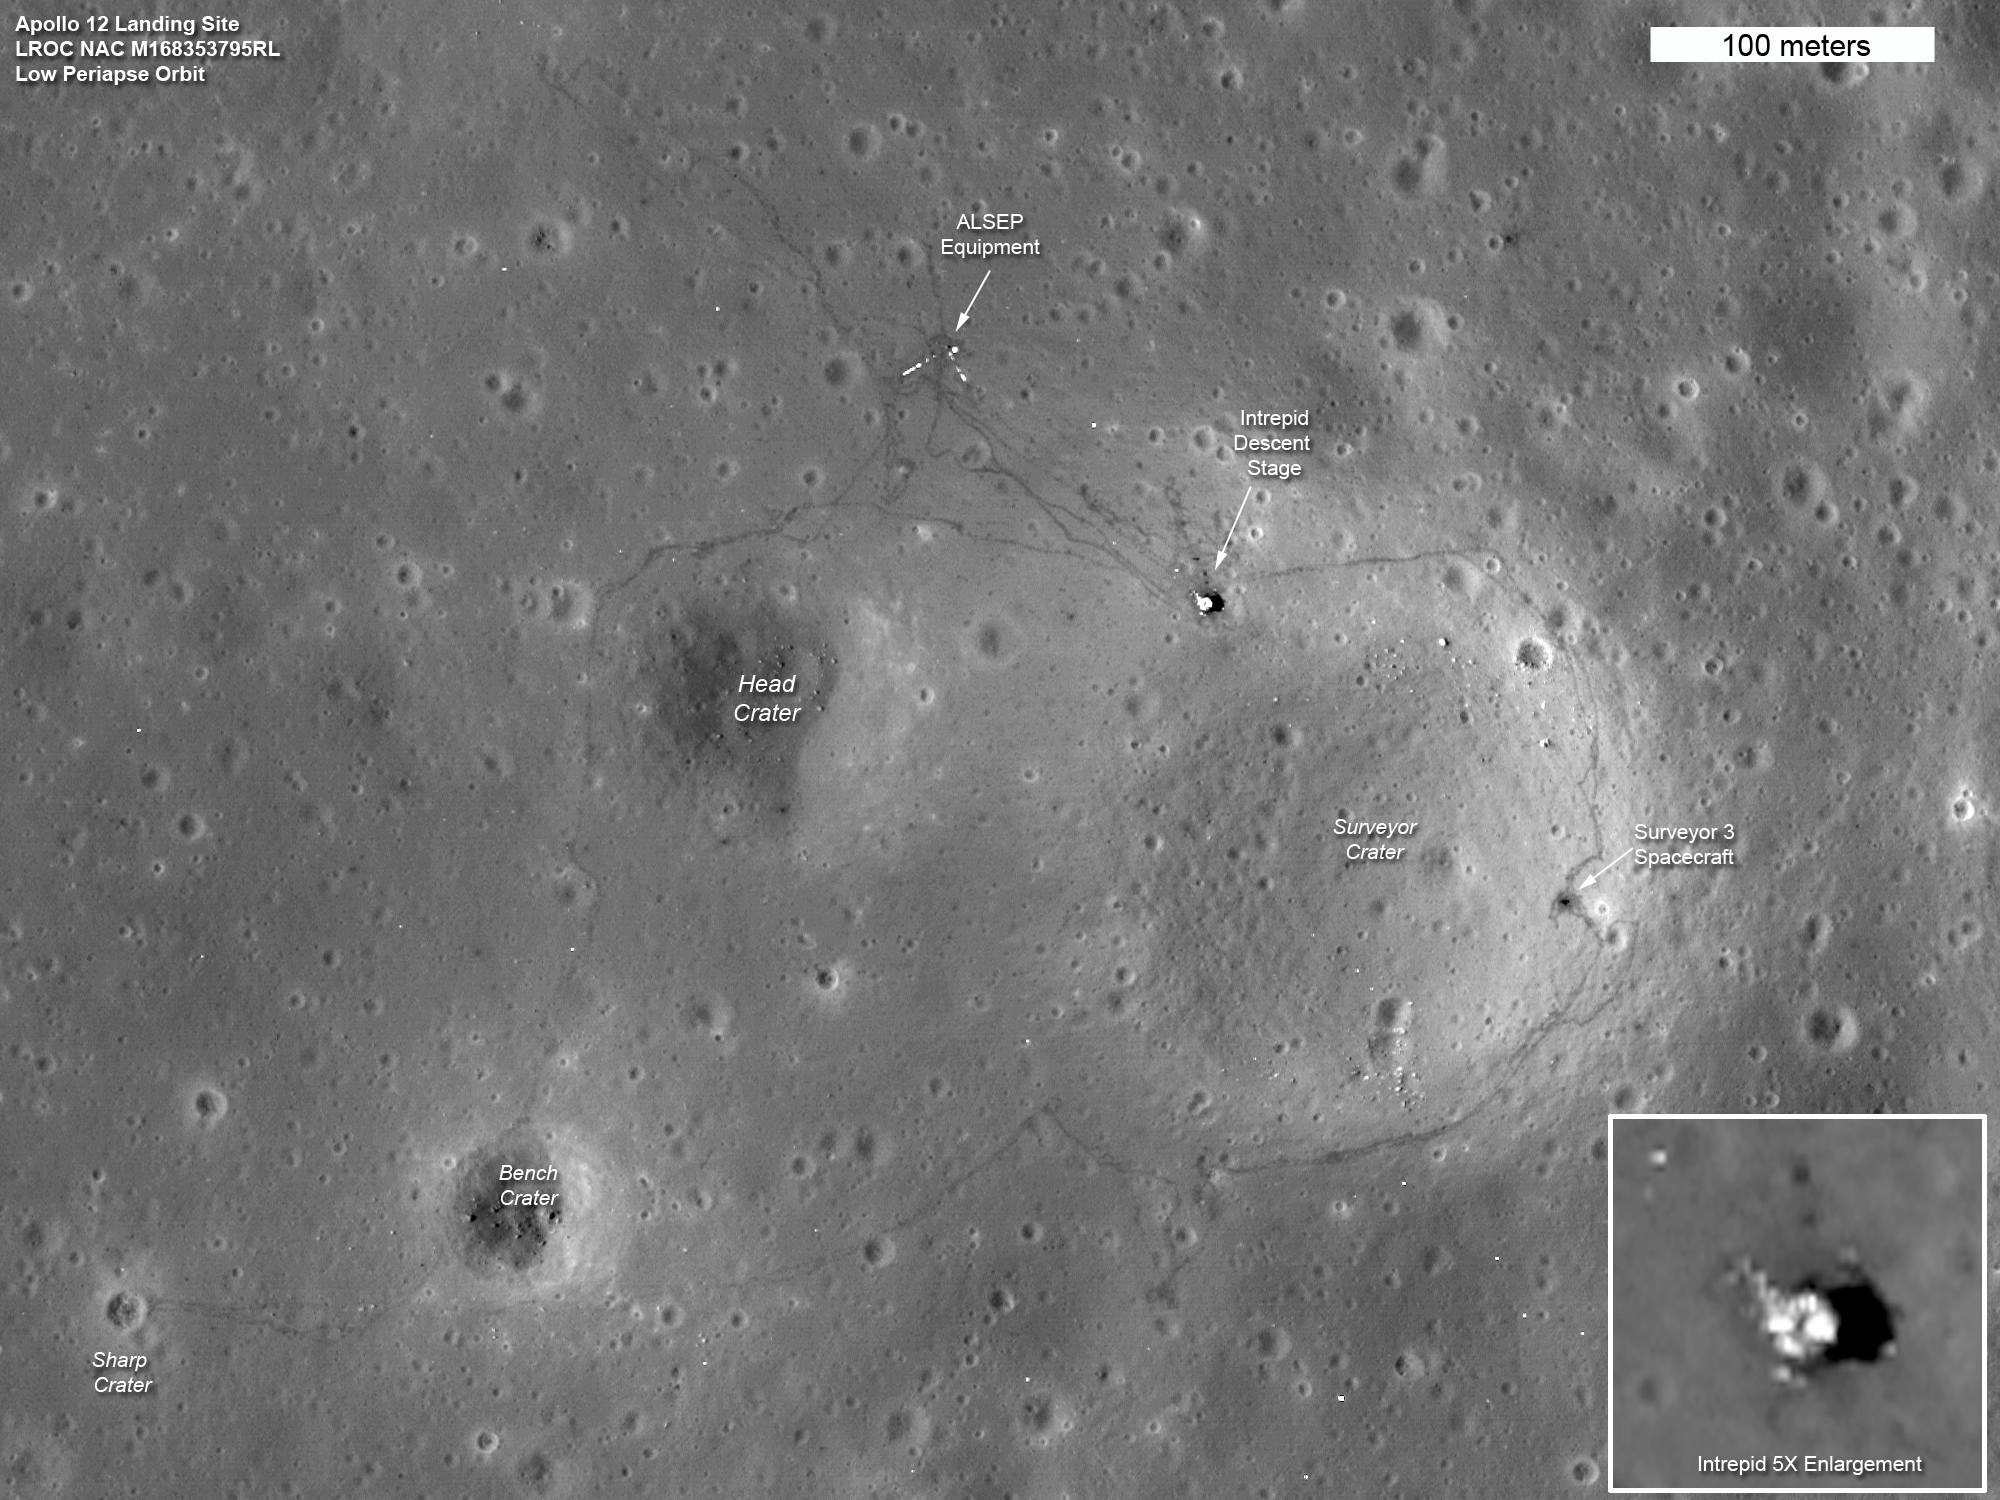 location moon map landing site apollo 12 - photo #19